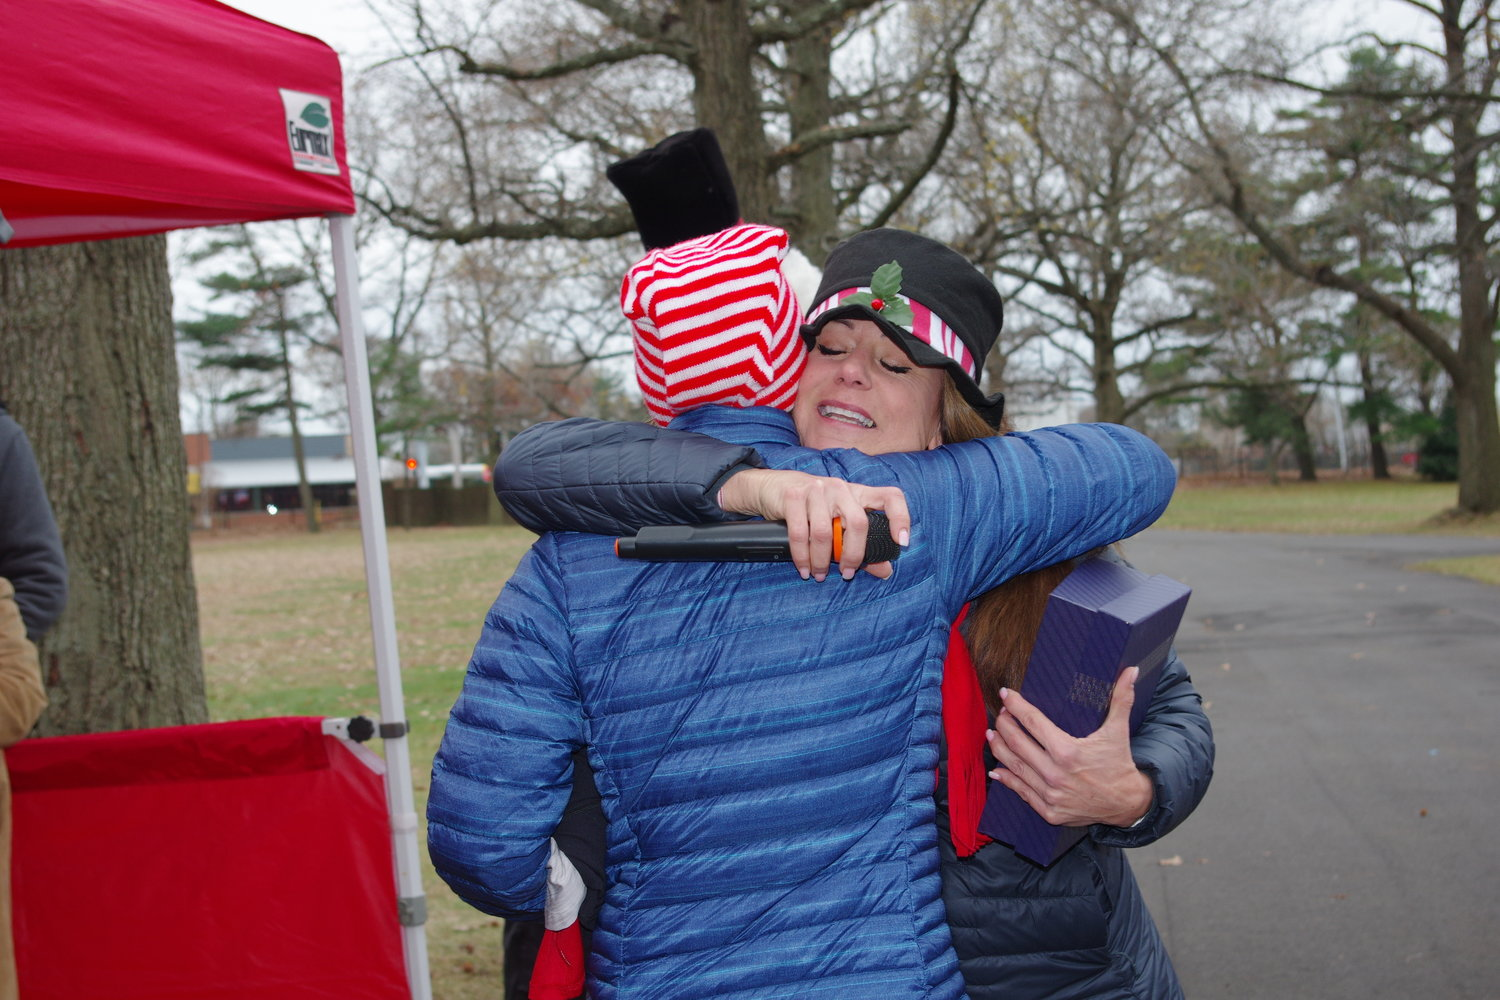 League of YES President Christine Fitzpatrick hugged first-place winner Bea Huste-Petersen, 55, of East Islip, after she crossed the finish line.